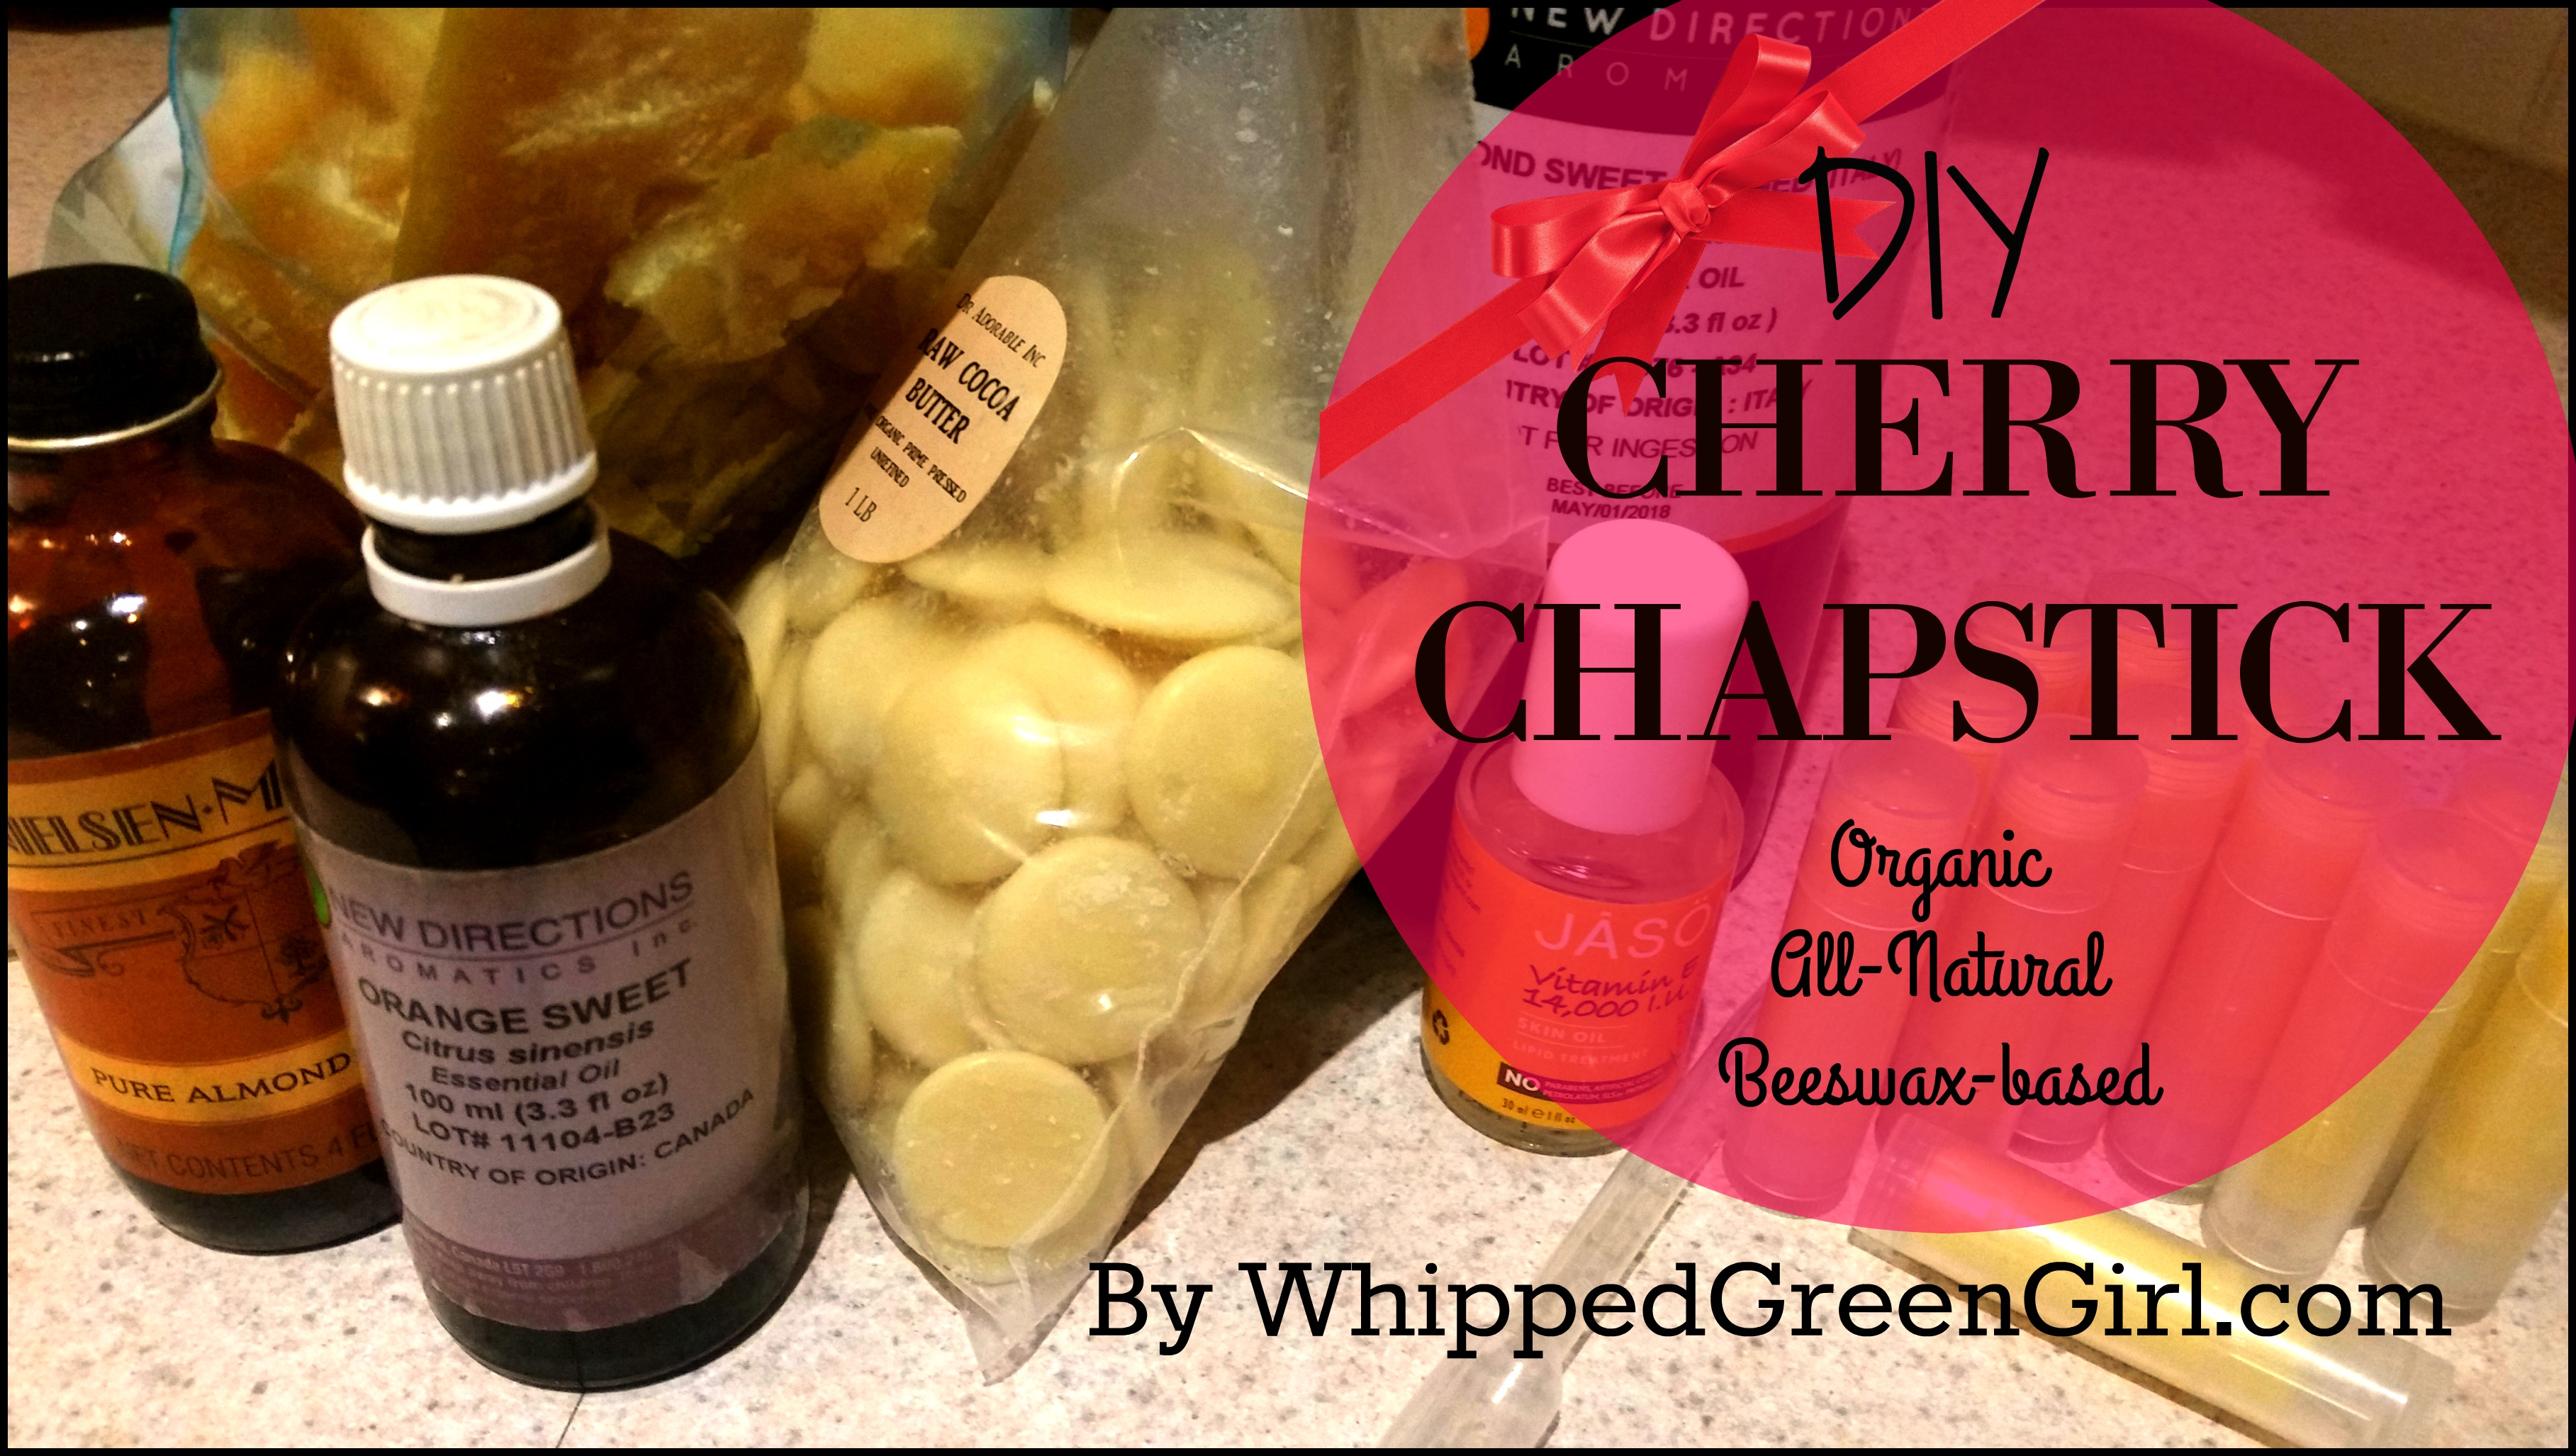 DIY Cherry Chapstick (By WhippedGreenGirl.com) #Lipgloss, #Organic, All-Natural, Beeswax-based